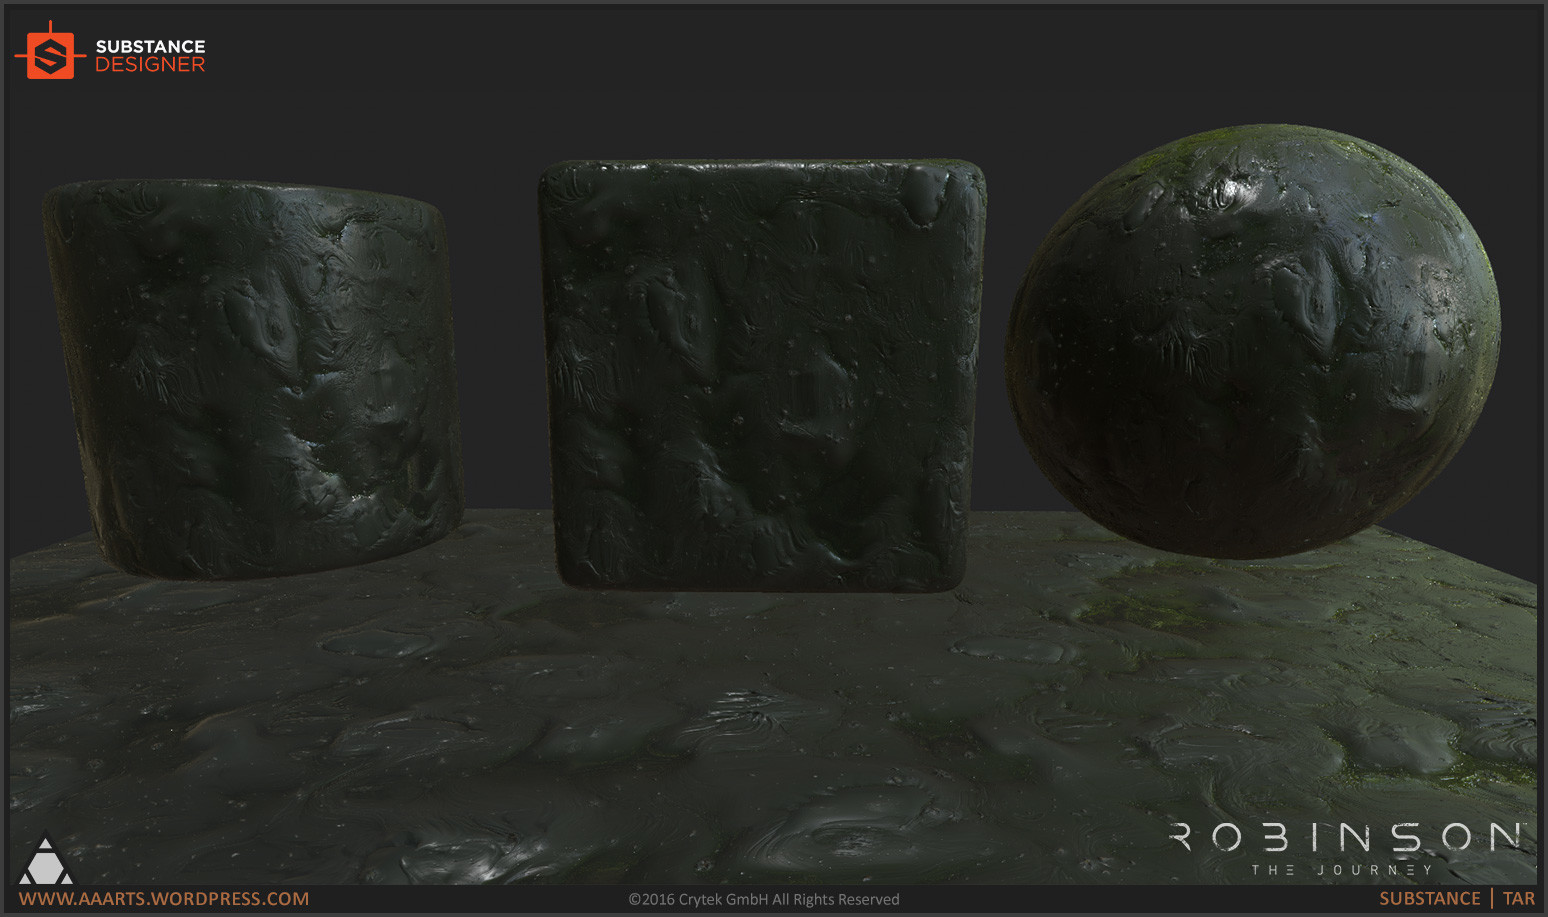 Crytek's CRYENGINE goes all-in on Substance – Find out why